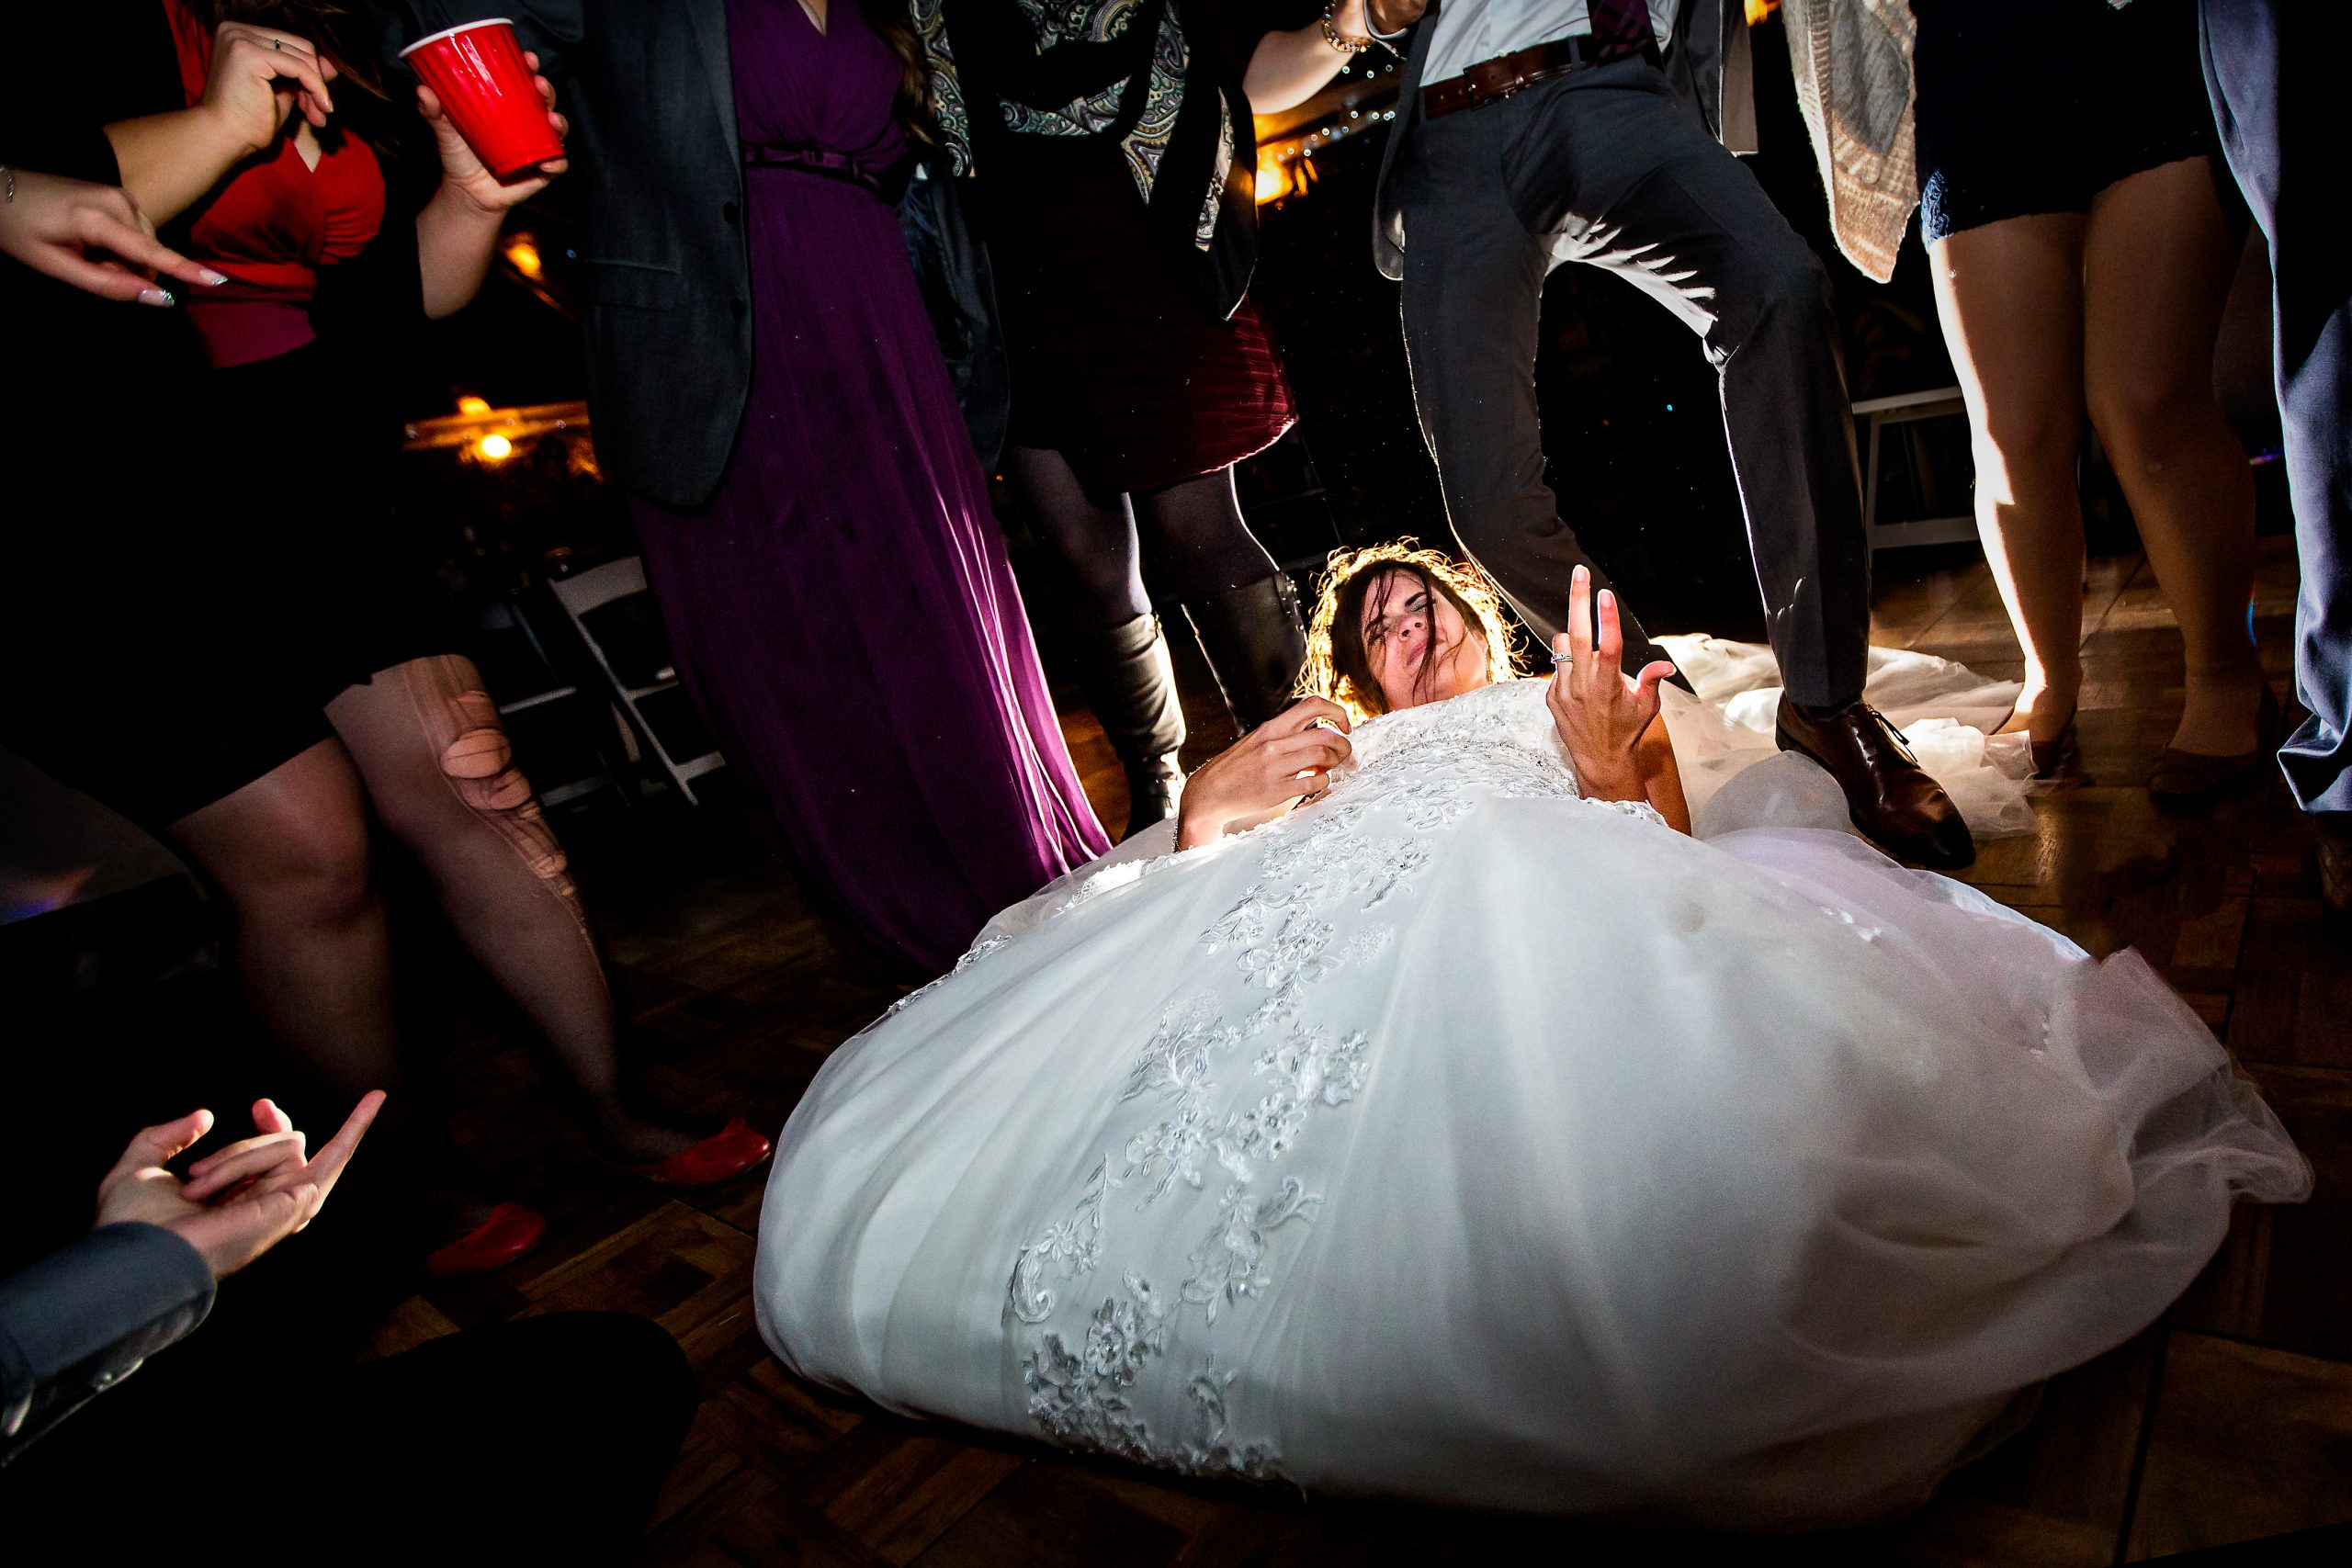 Bride plays air guitar on the party floor